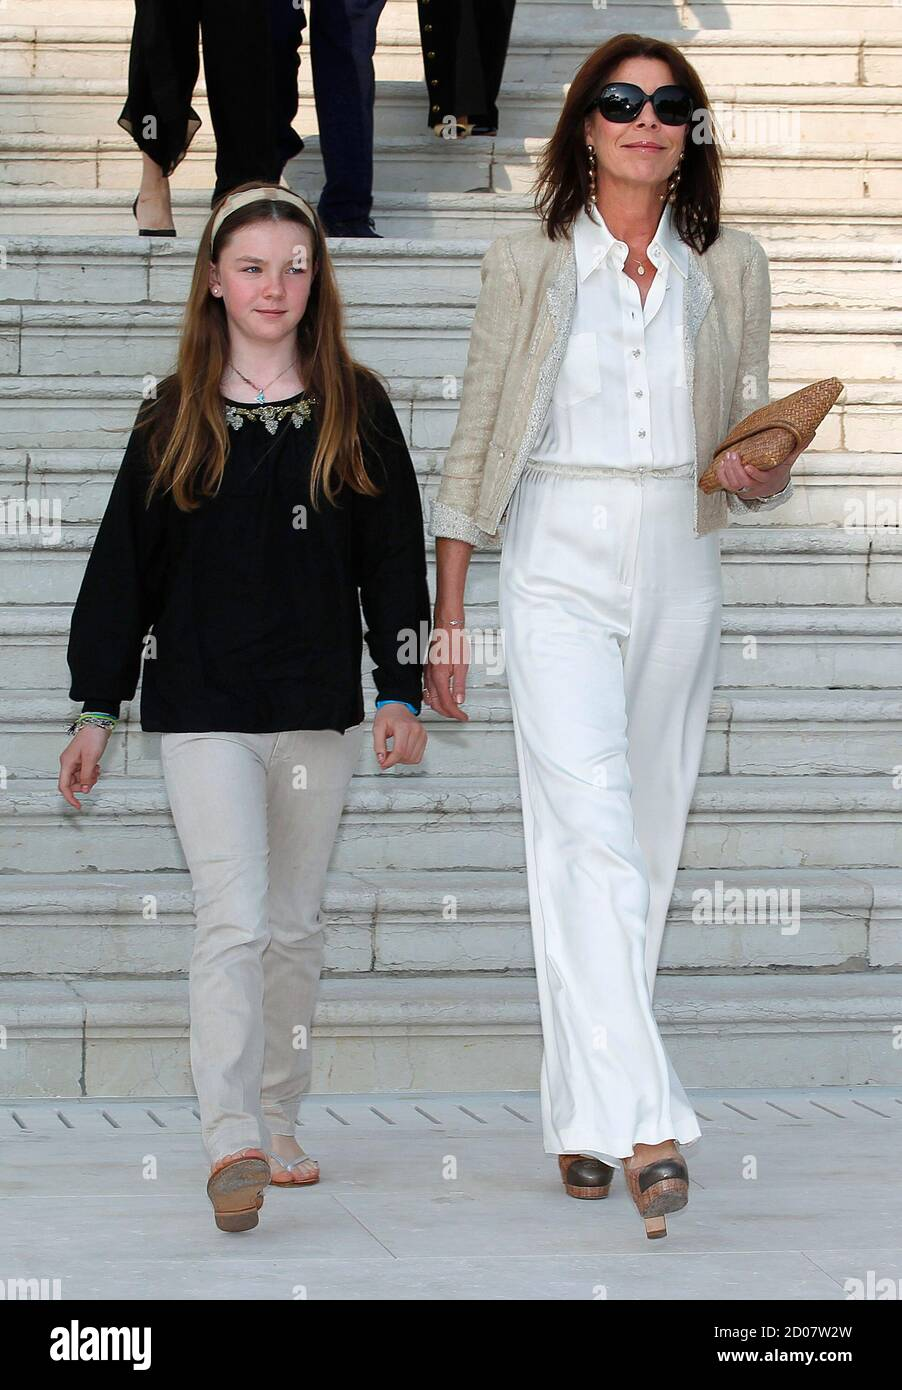 princess-caroline-of-hanover-r-and-her-daughter-alexandra-arrive-for-the-2011-2012-cruise-collection-show-for-french-fashion-house-chanel-at-the-cap-dantibes-on-the-french-riviera-may-9-2011-reutersvincent-kessler-france-tags-fashion-royals-2D07W2W.jpg